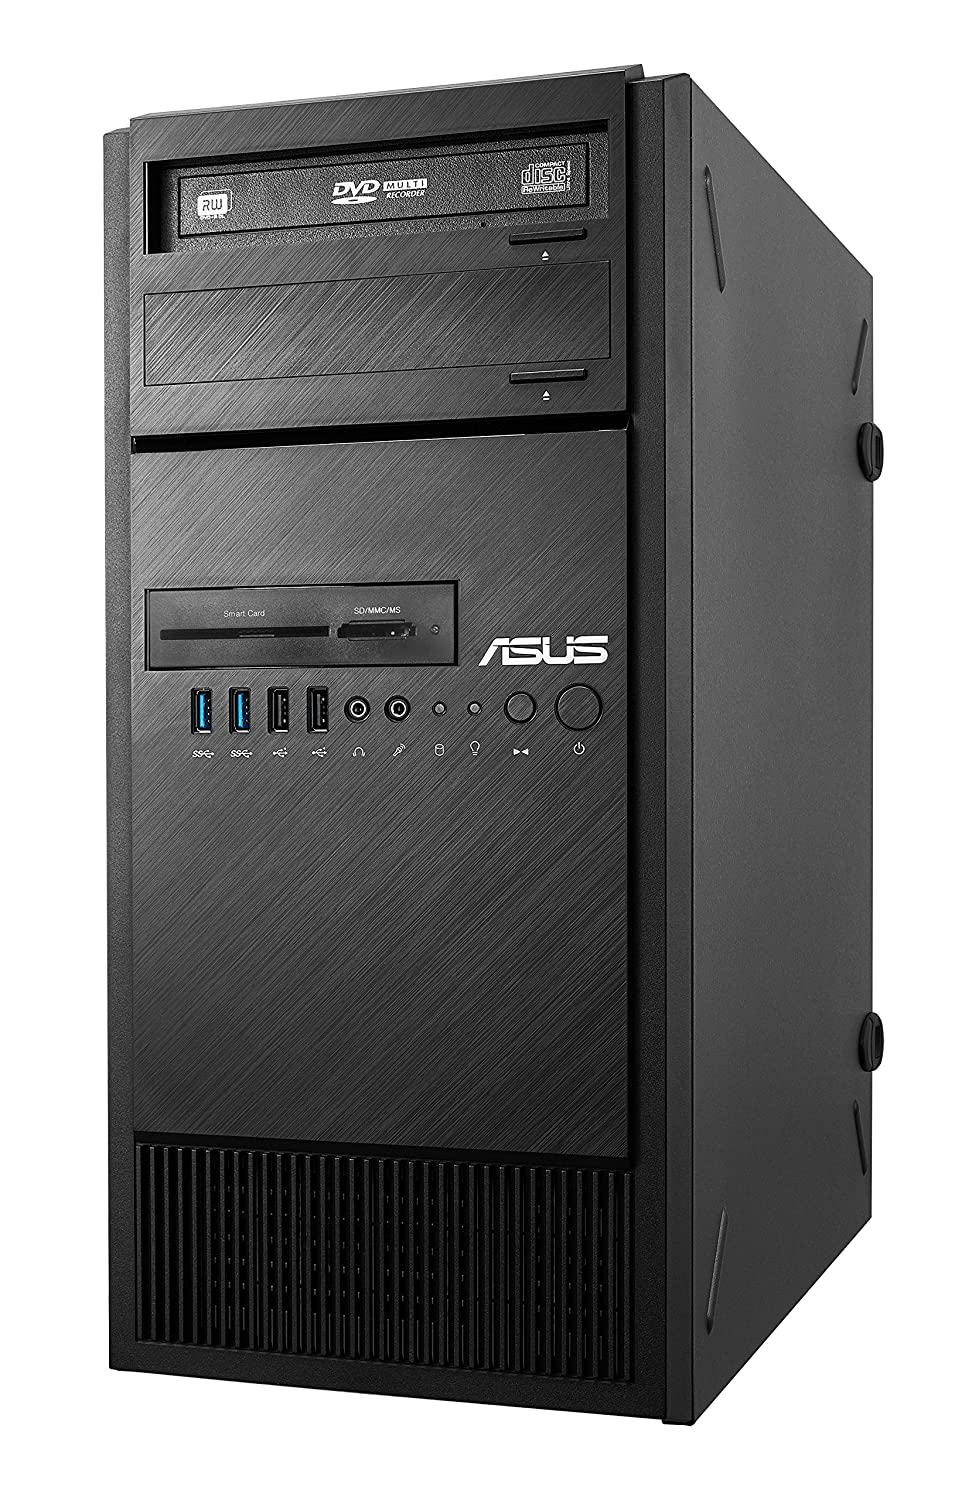 Asus ESC500 G4 - M3P Tower Workstation i7-7700 16GB/256GB SSD sin Windows